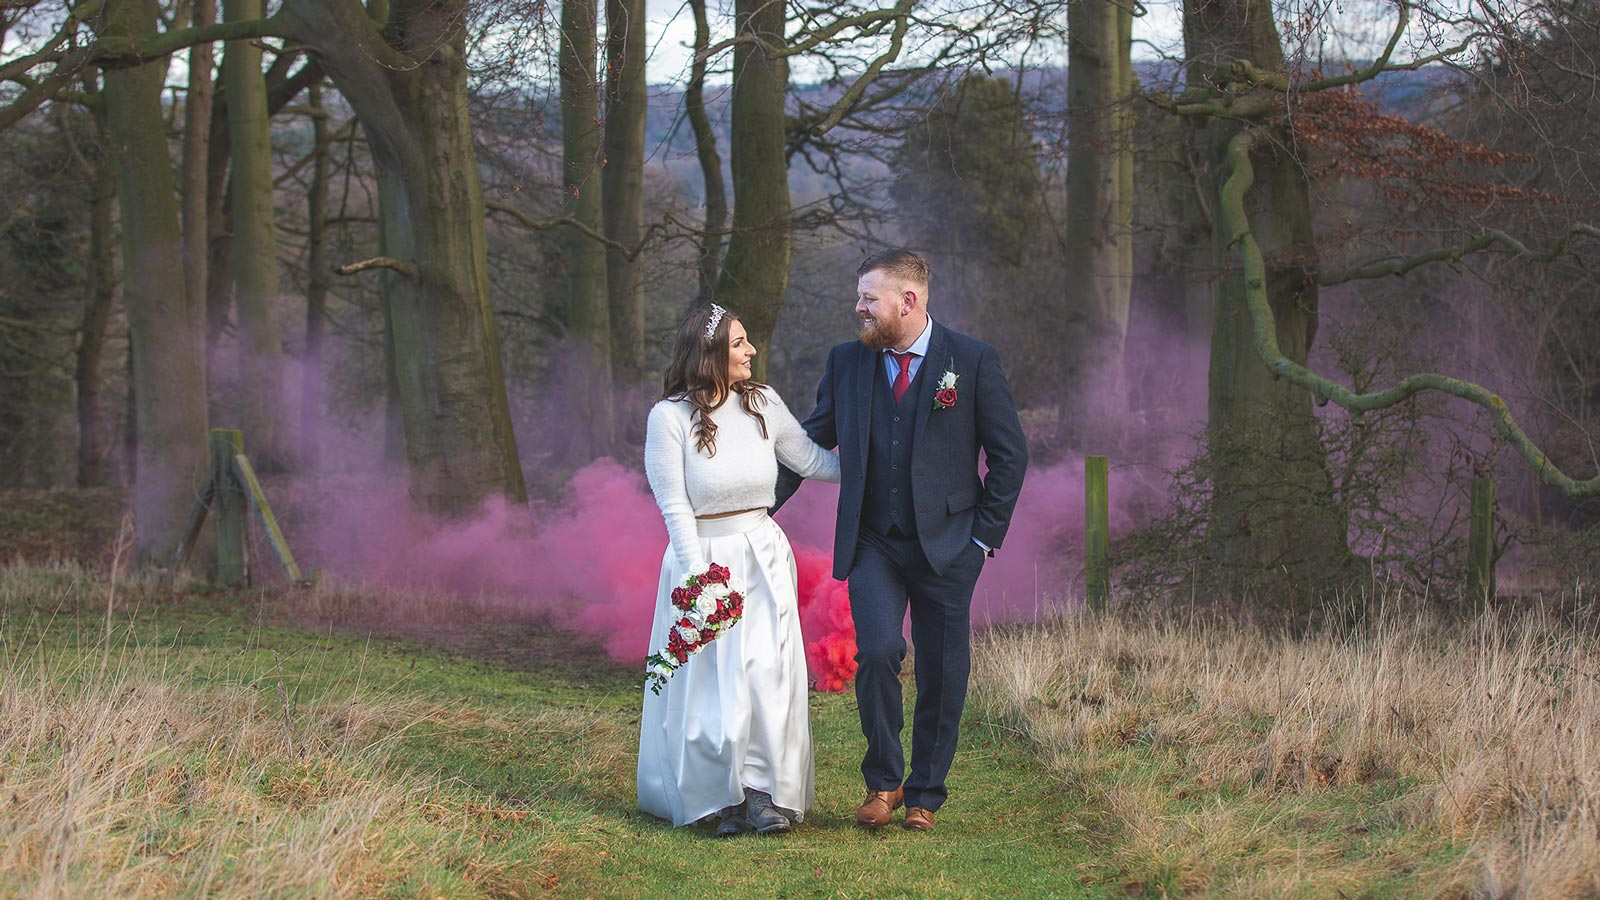 Creative wedding photography at South Causey Inn